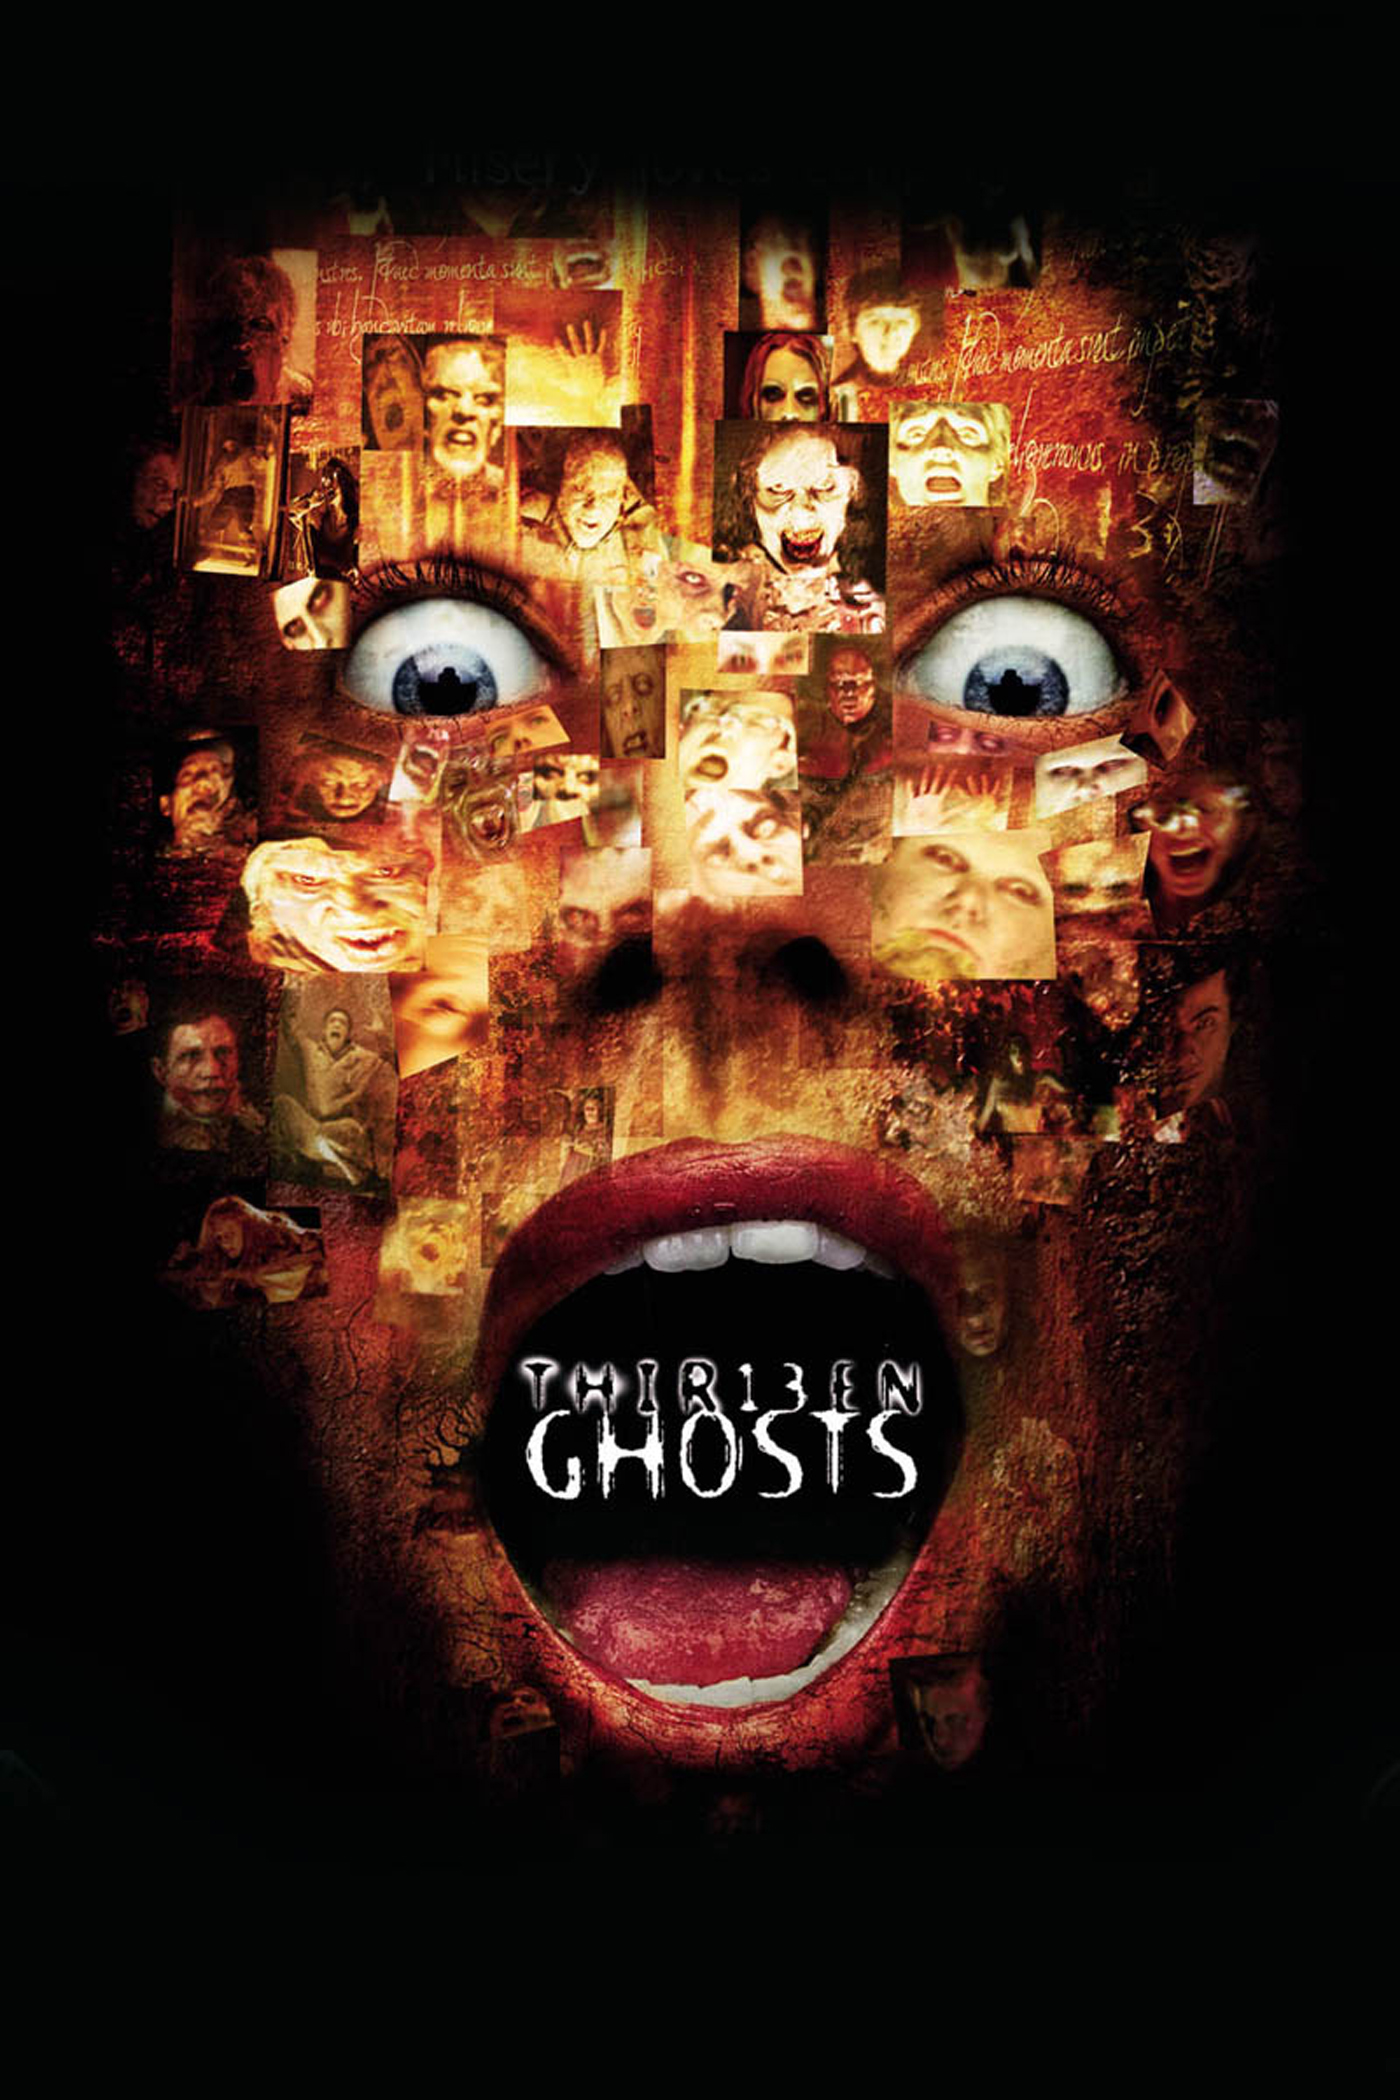 13 Ghosts (2002)